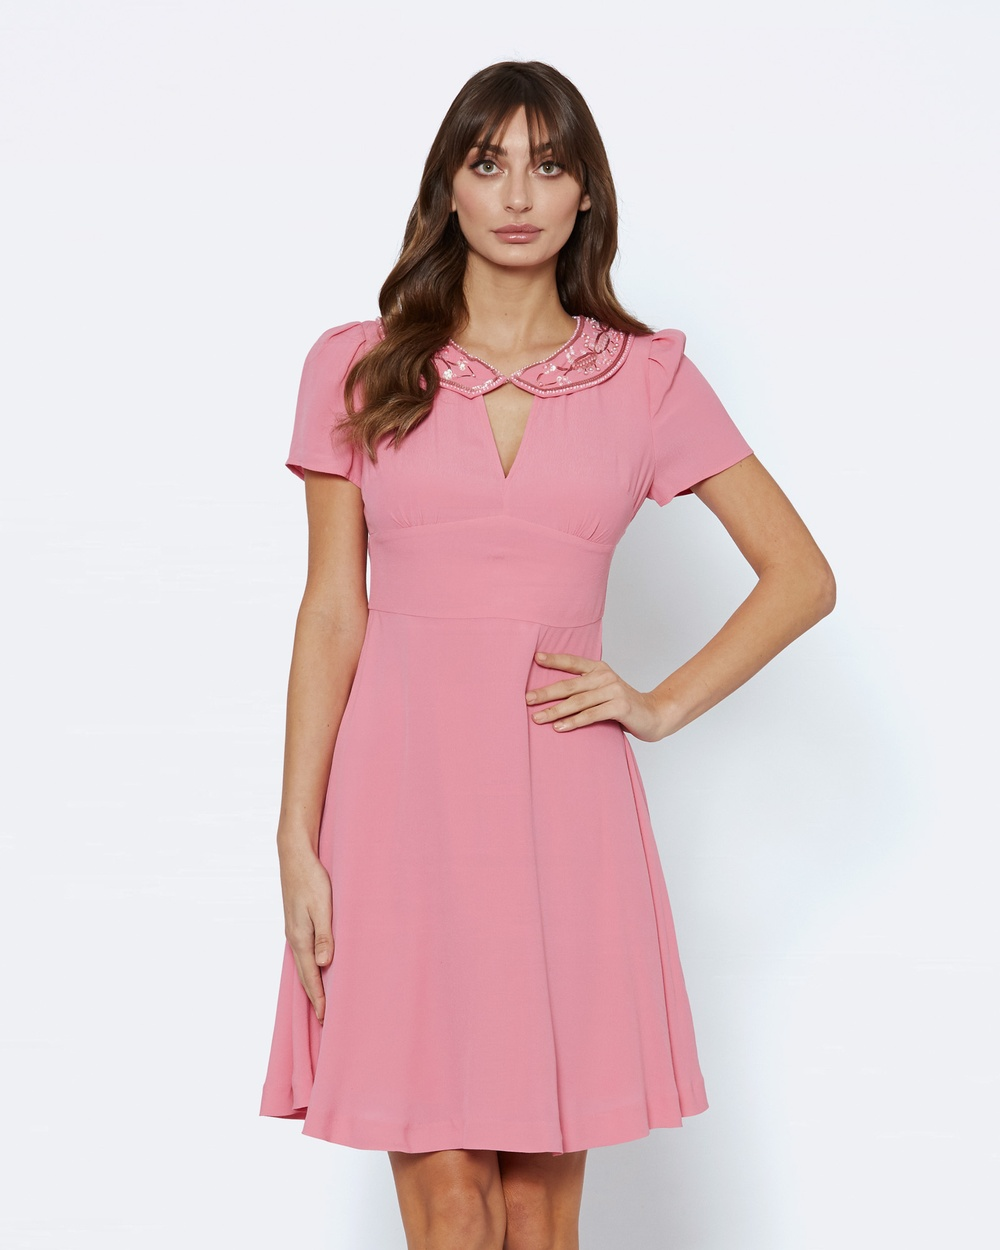 Alannah Hill Beautiful Dreams Dress Dresses Pink Beautiful Dreams Dress